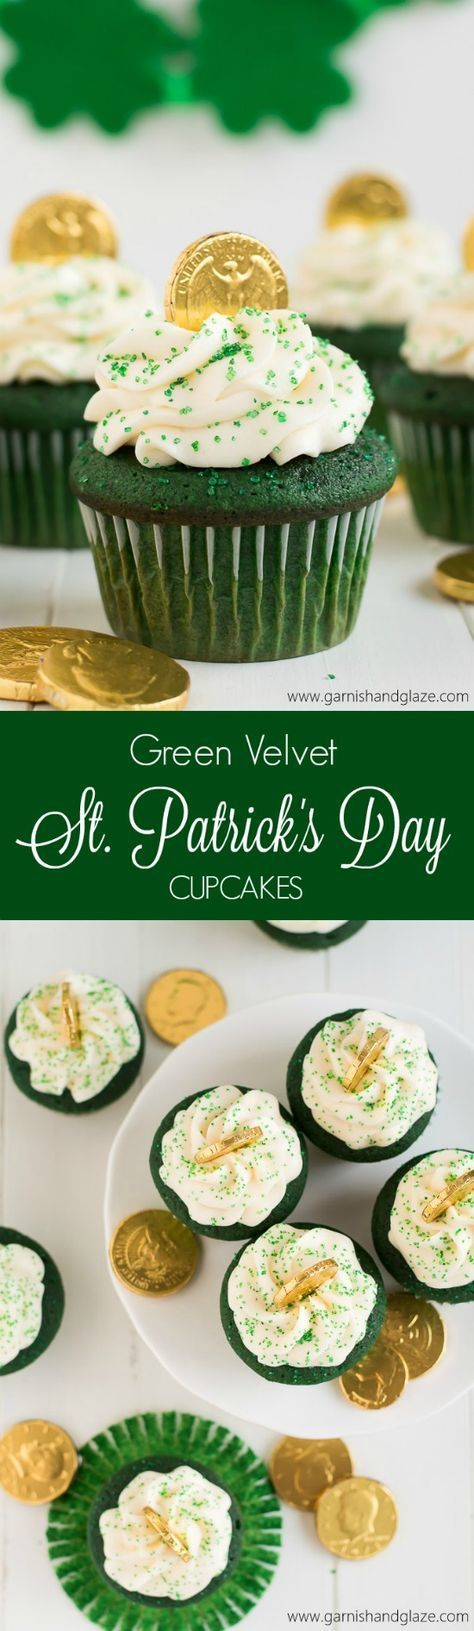 Get in the St. Patrick's Day Spirit with these yummy Green Velvet St. Patrick's Day Cupcakes topped with Cream Cheese Frosting.